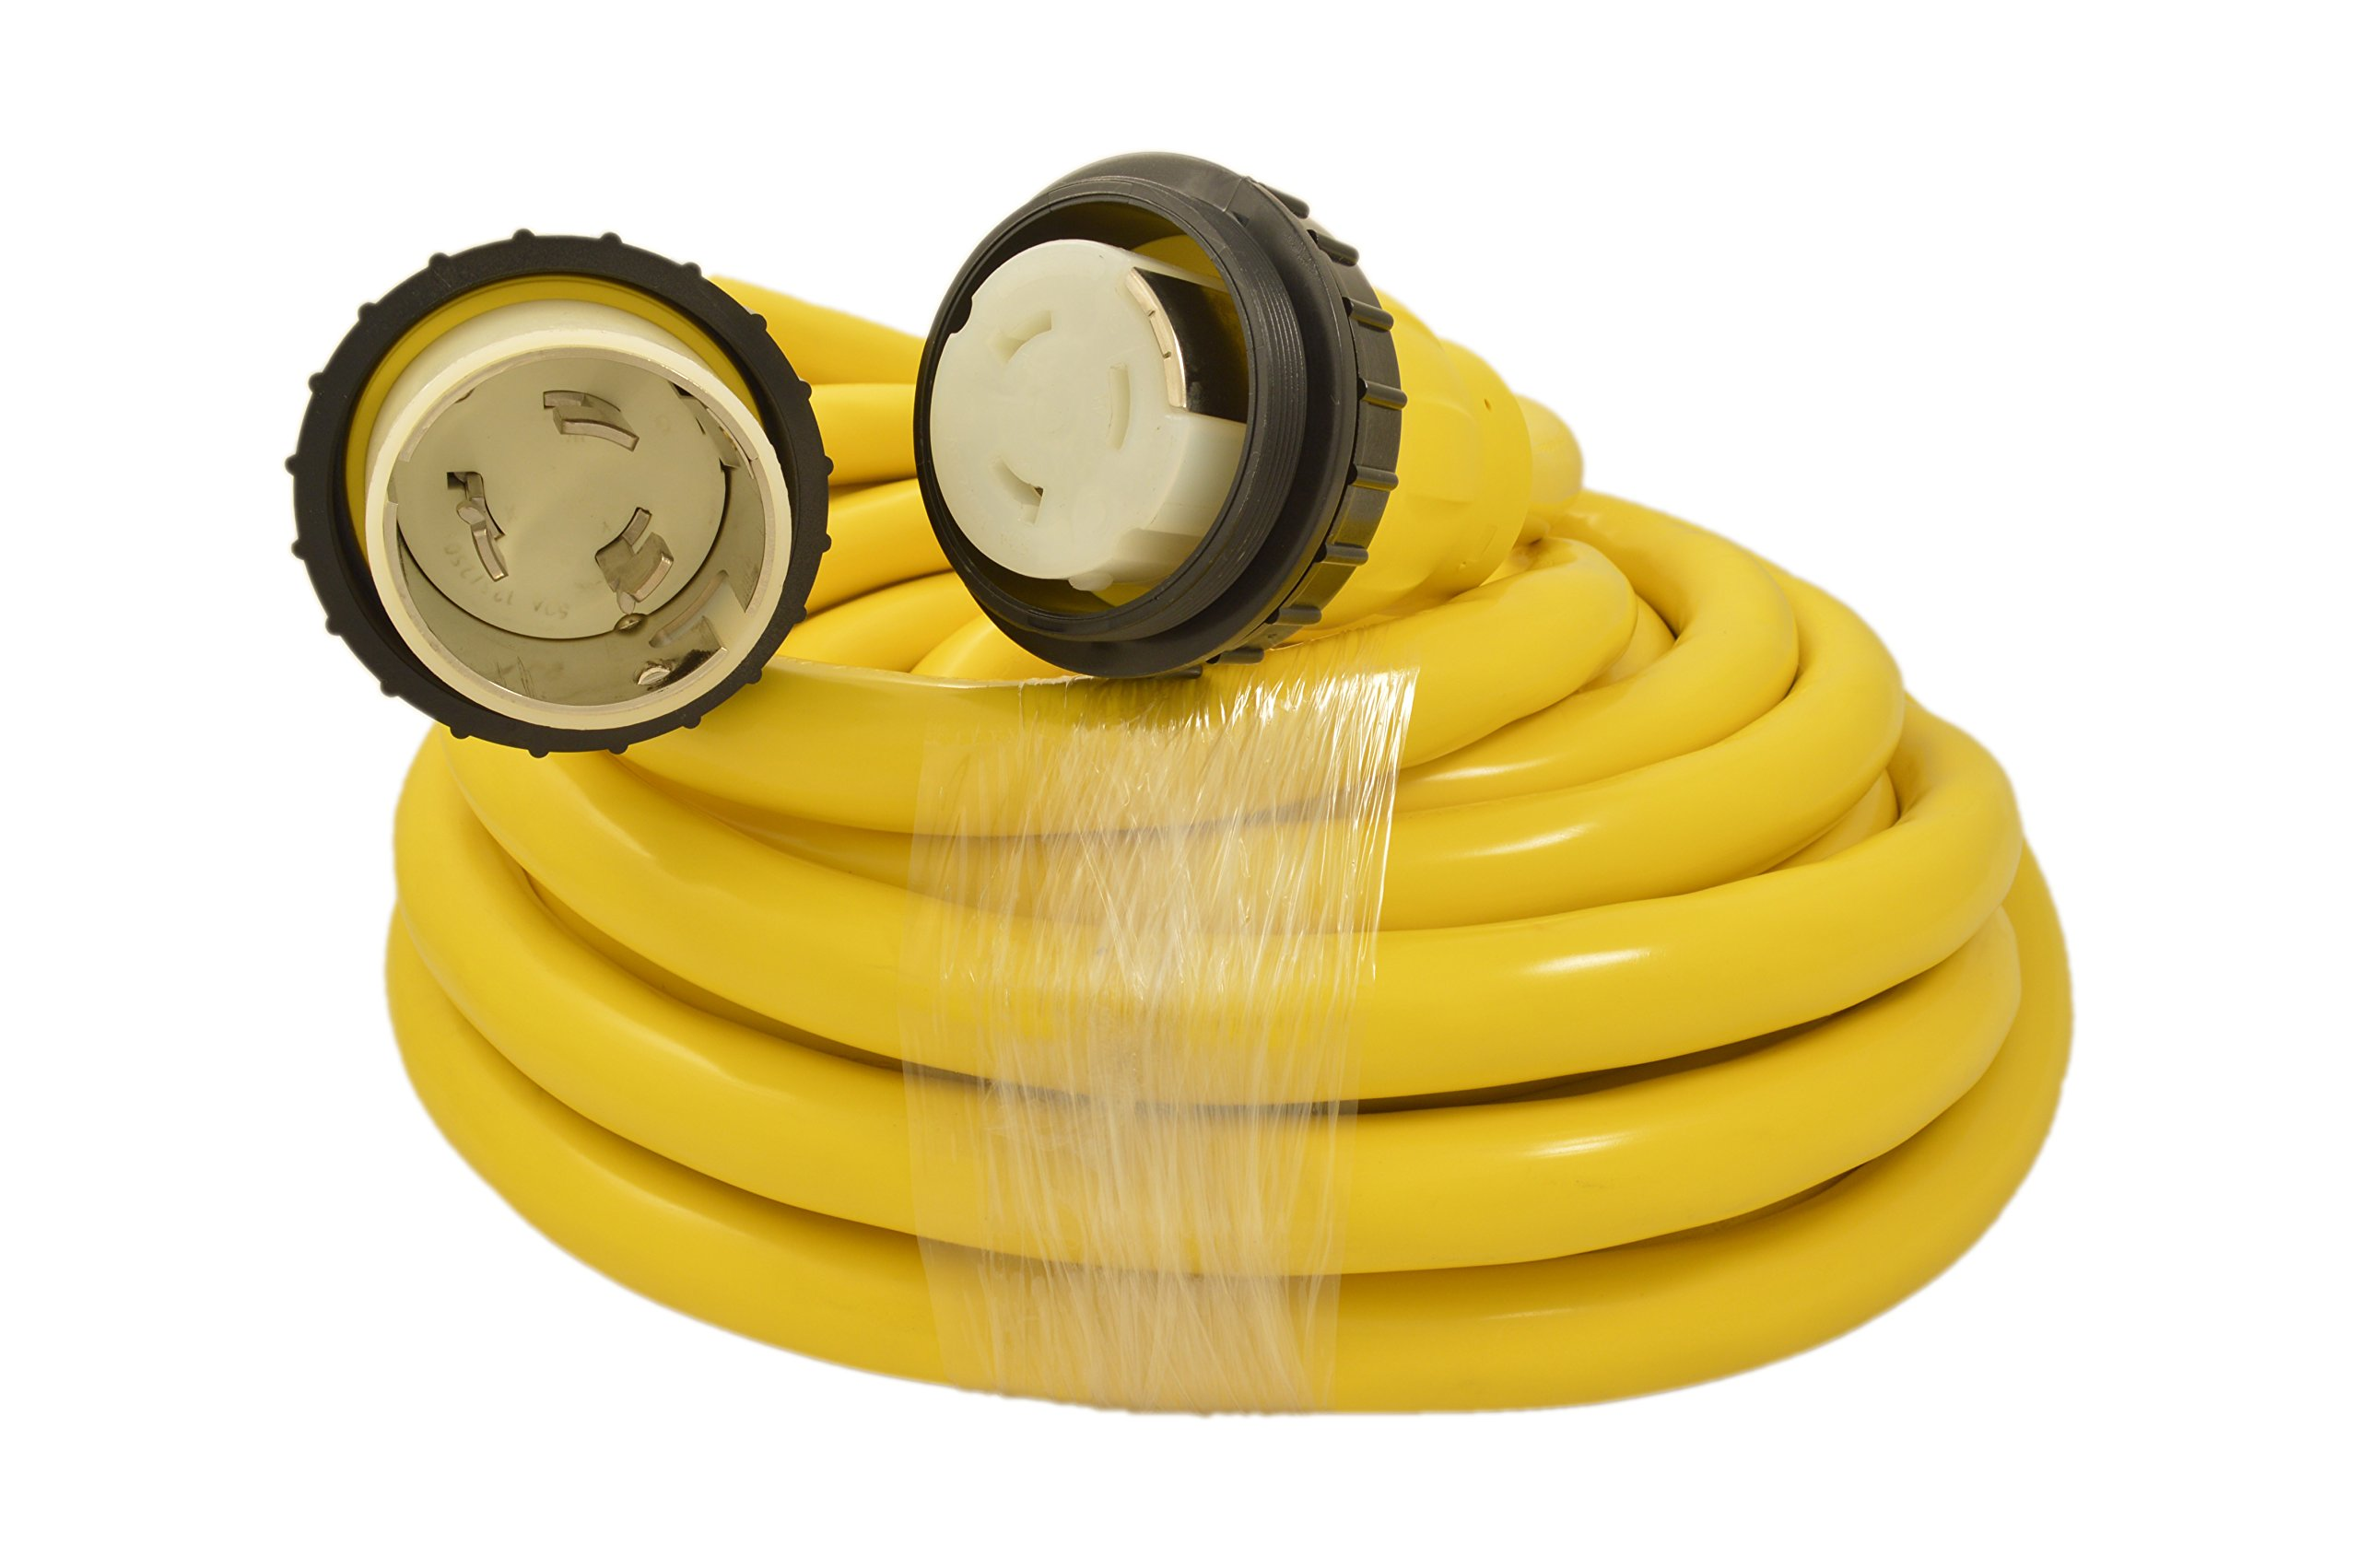 (50 Amp - 50 ft) Marine/Shore Power Cord (7727) by High Tide Marine Cords